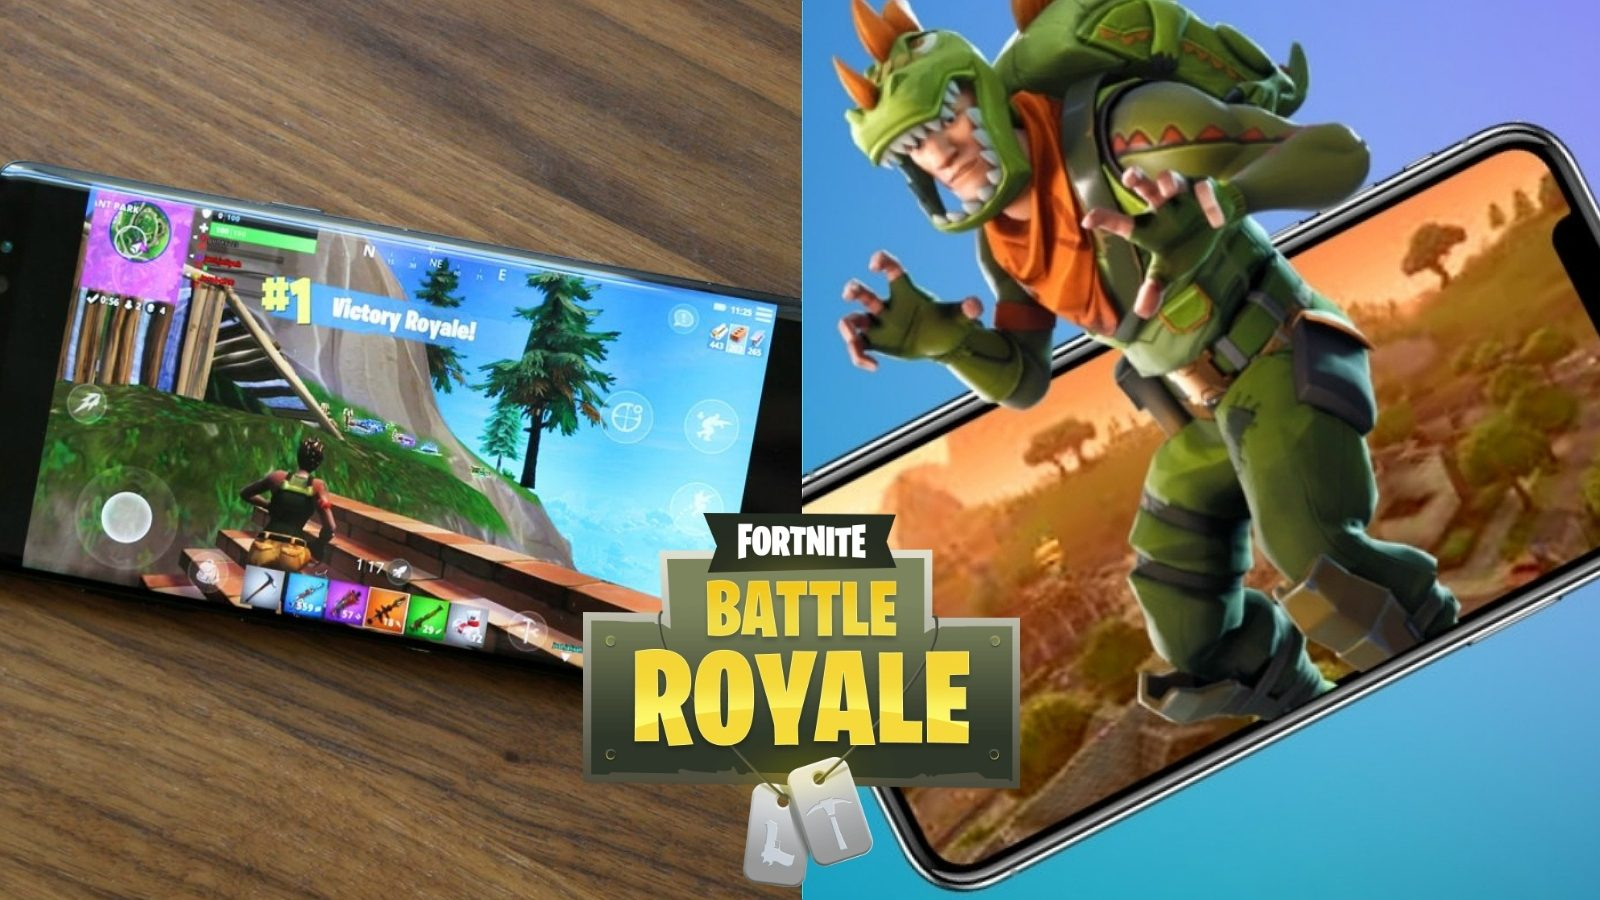 Fortnite battle royale mobile review